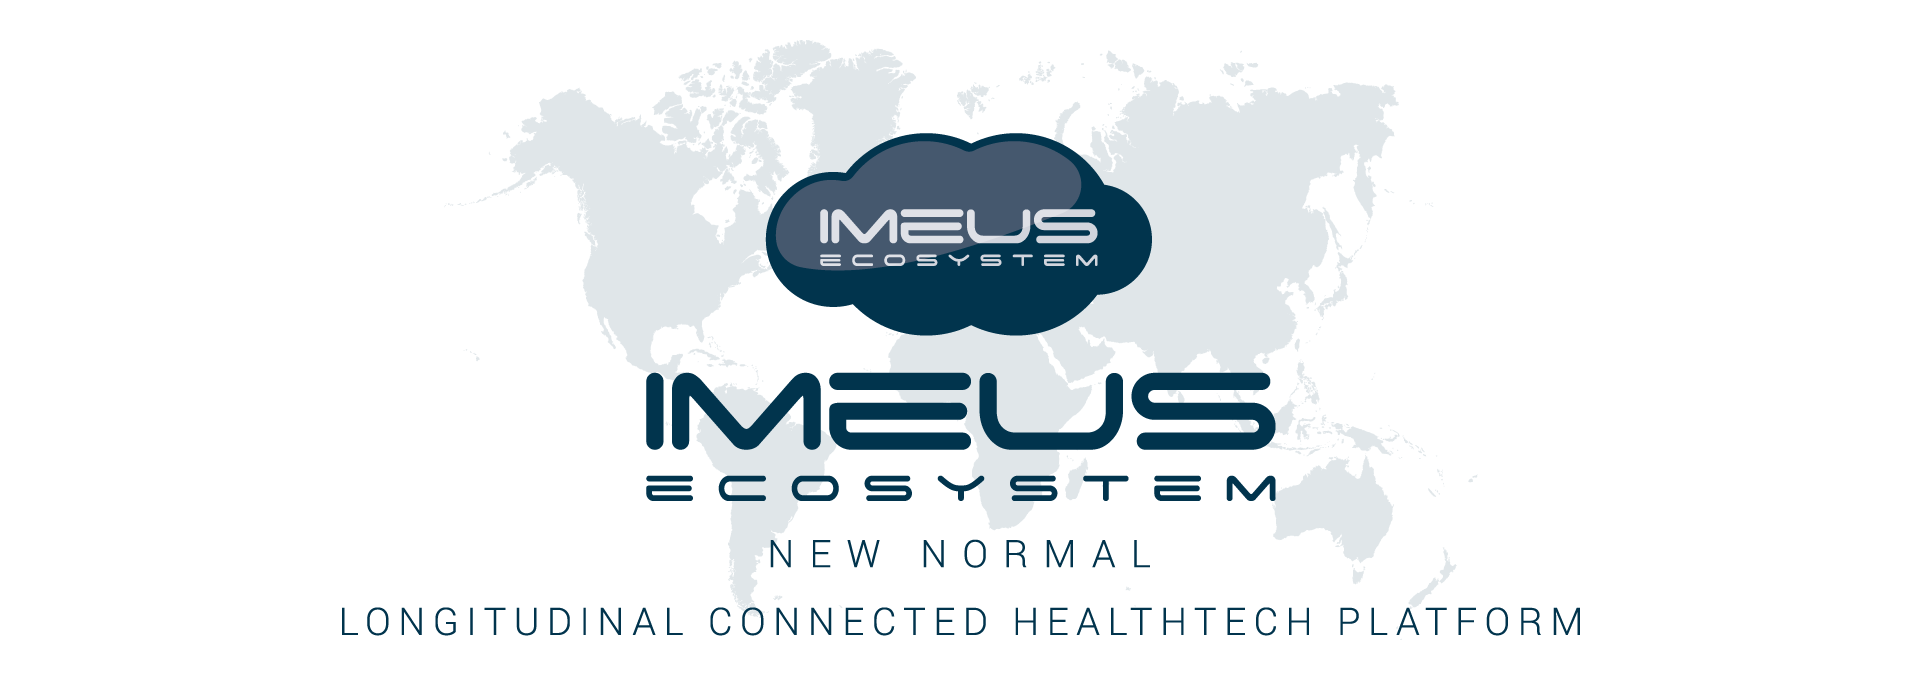 IMEUS Cloud EcoSystem - Connected Singularity Platform